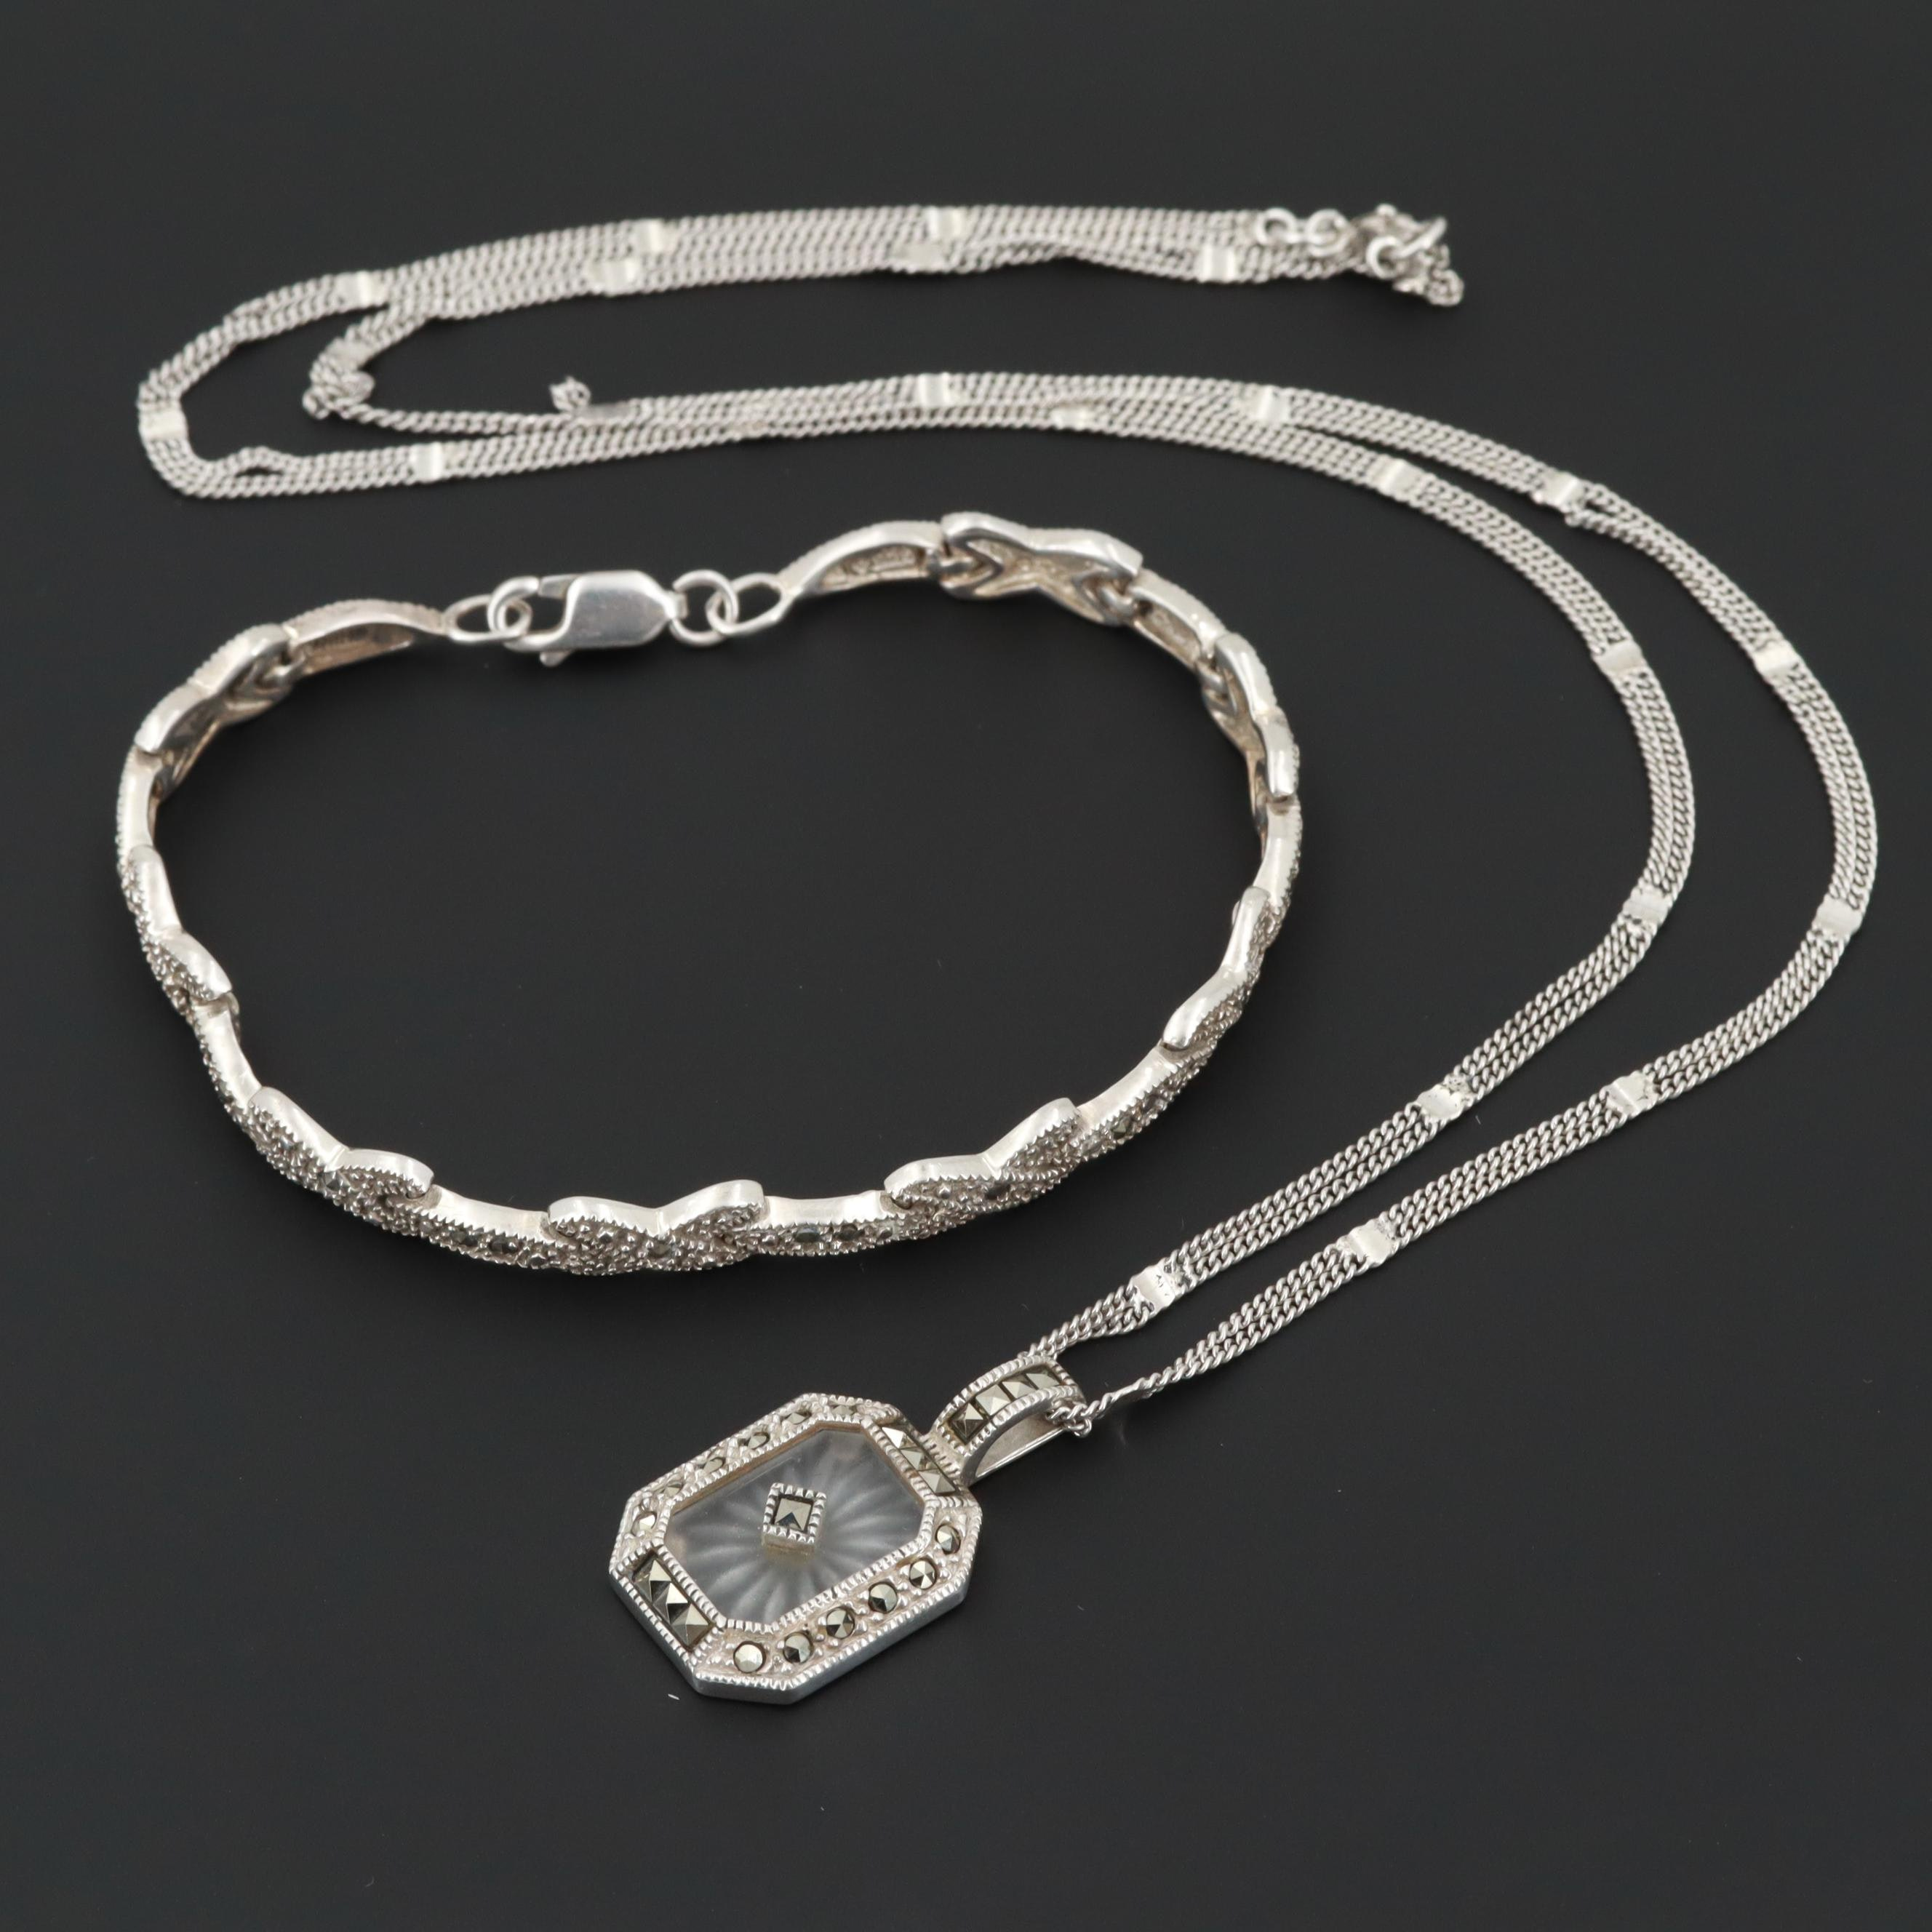 Judith Jack Sterling Silver Camphor Glass and Marcasite Necklace and Bracelet